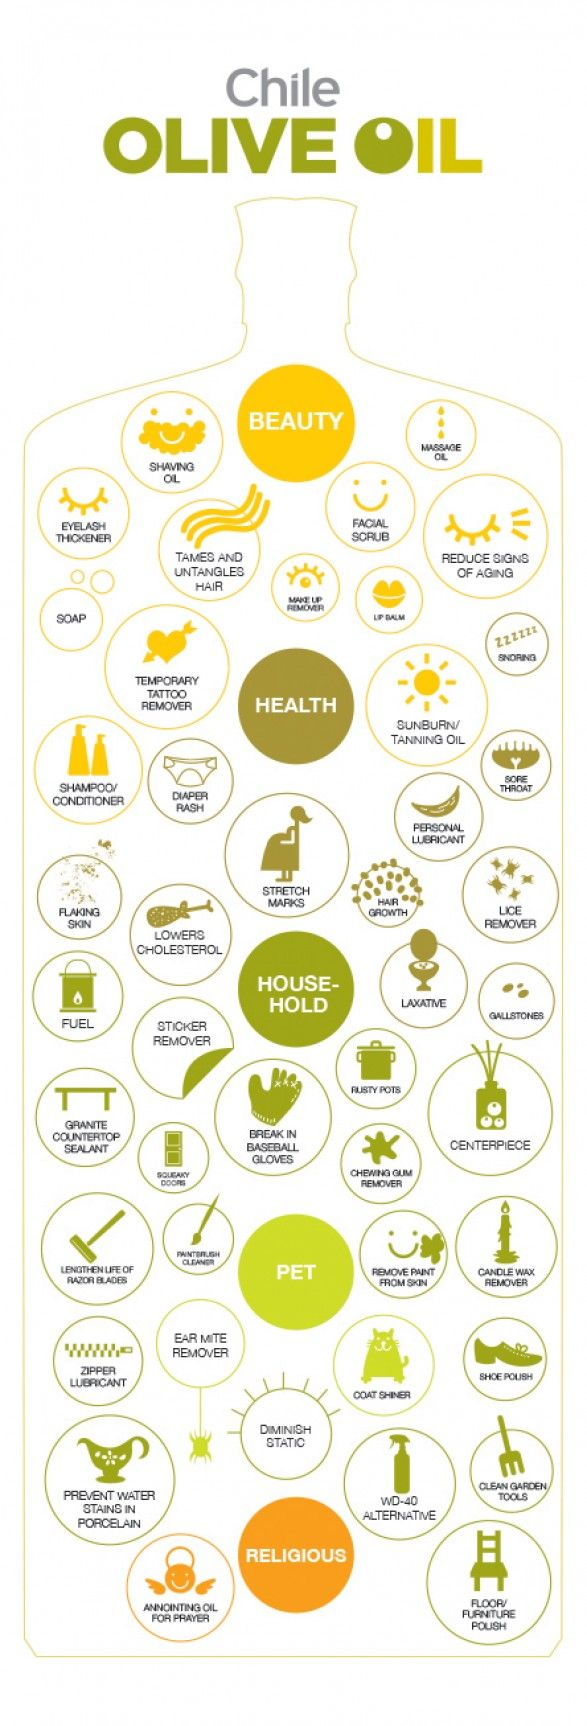 TheusesofOliveOil 5069fcac346d0 w587 The Many Uses for Olive Oil